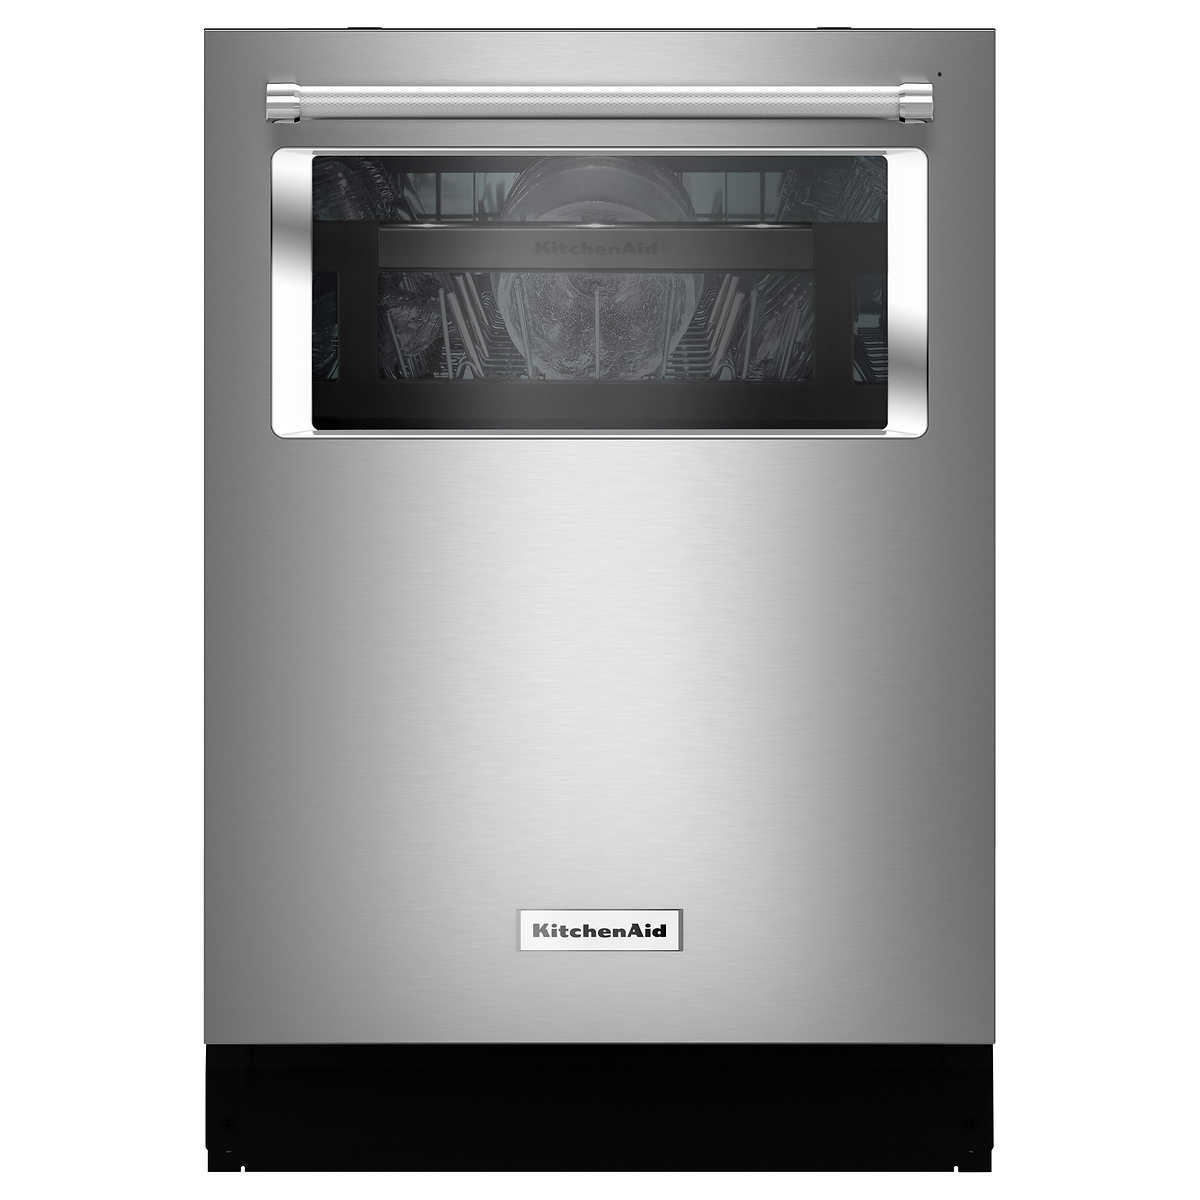 Kitchenaid Top Control Dishwasher With Third Level Rack And Dynamic Wash Arm In Stainless Steel,Wardrobe Organization Ideas